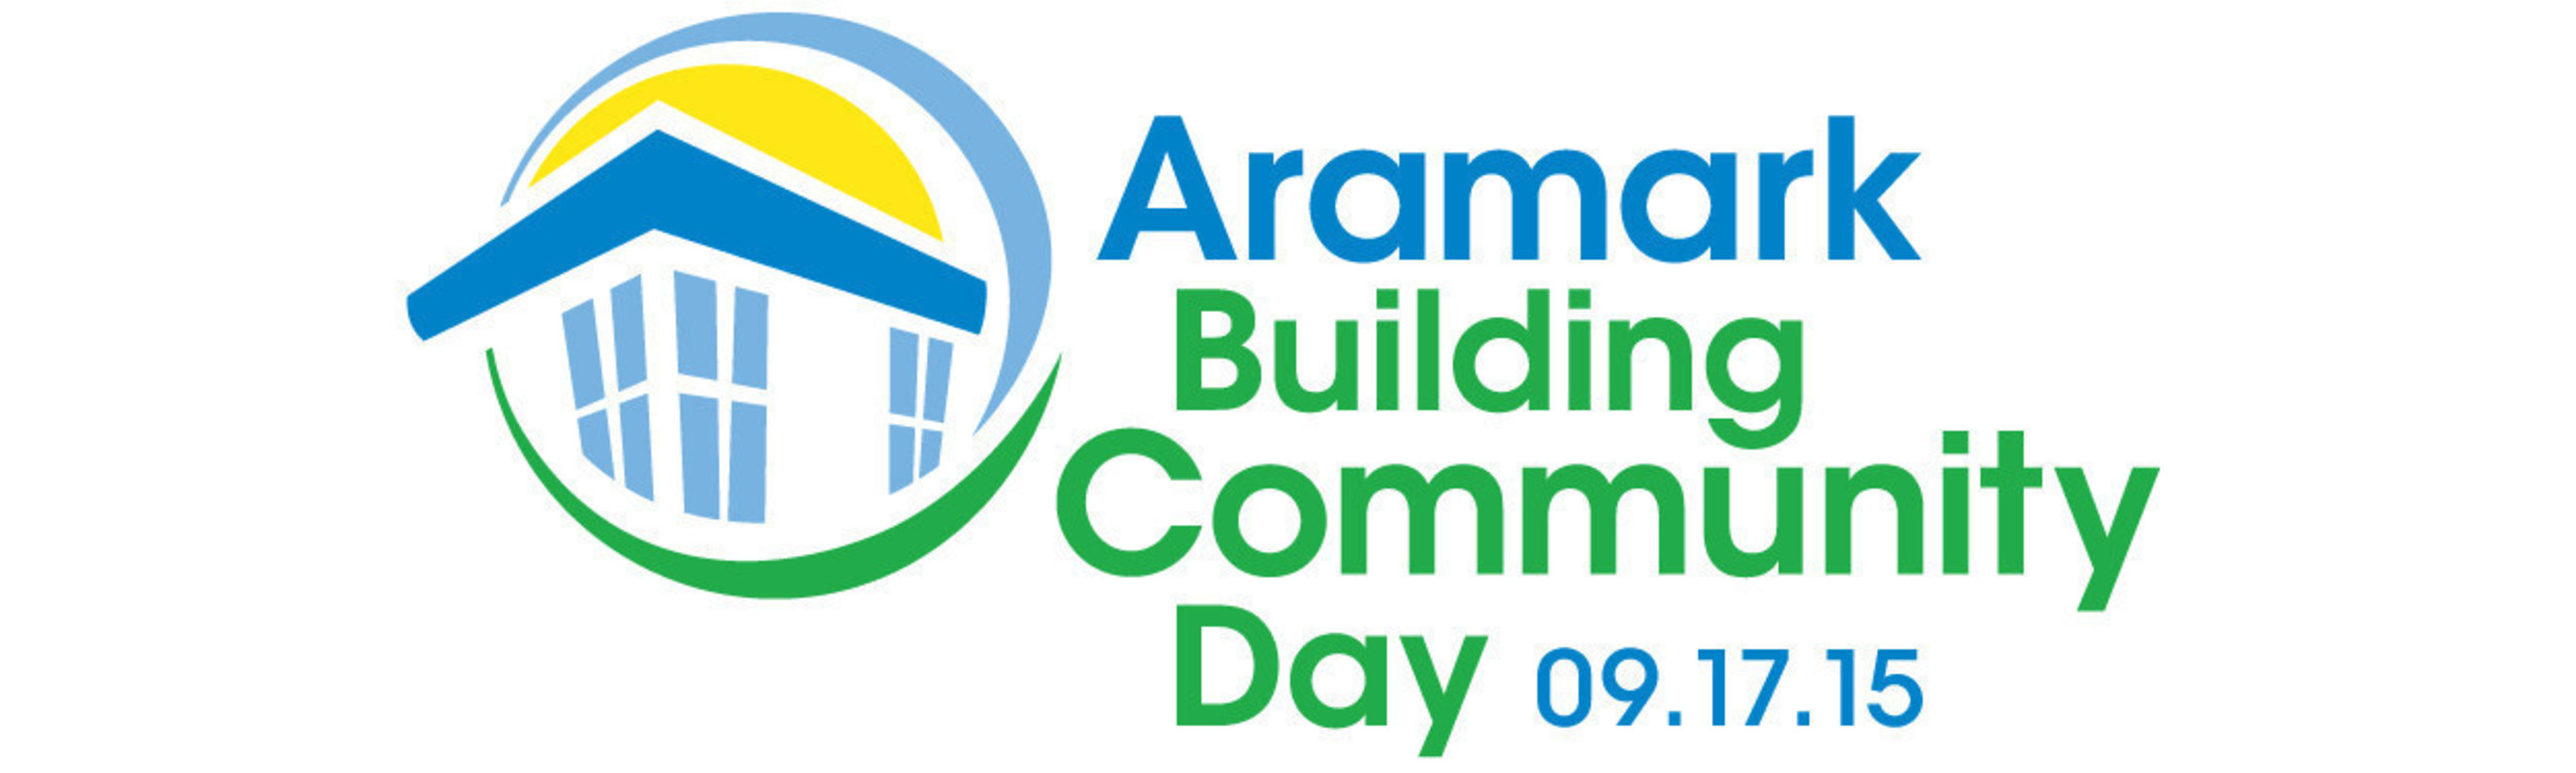 Aramark Building Community Day logo